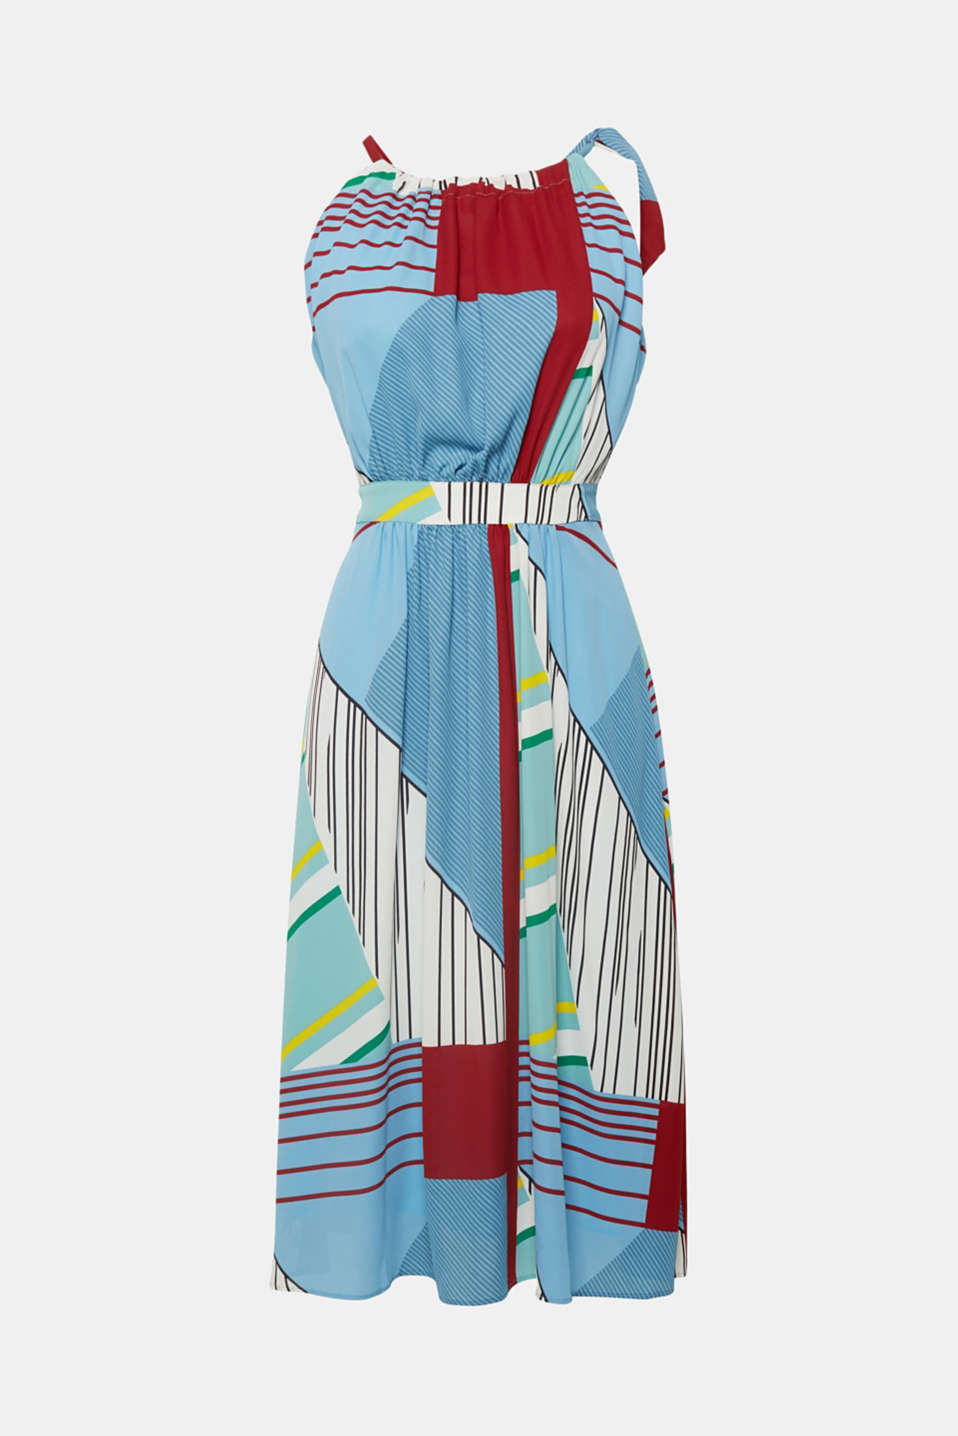 You are sure to turn heads in this one: dress with a colourful, mixed stripe pattern, wide swirling skirt and cut-away shoulders!